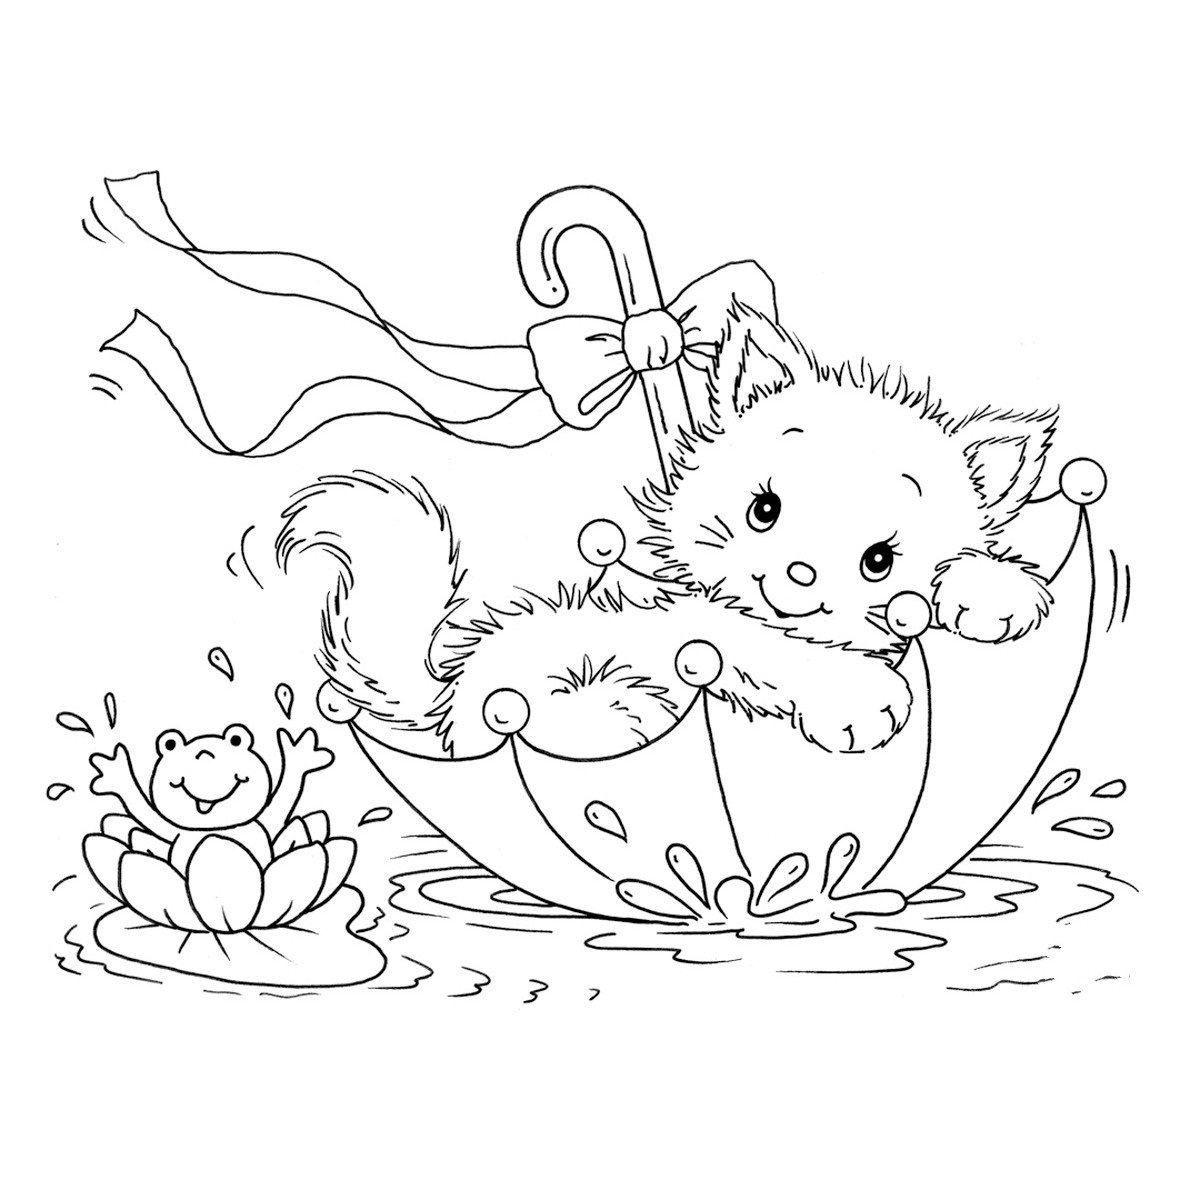 colouring pages cats cat coloring pages for adults part 6 pages cats colouring